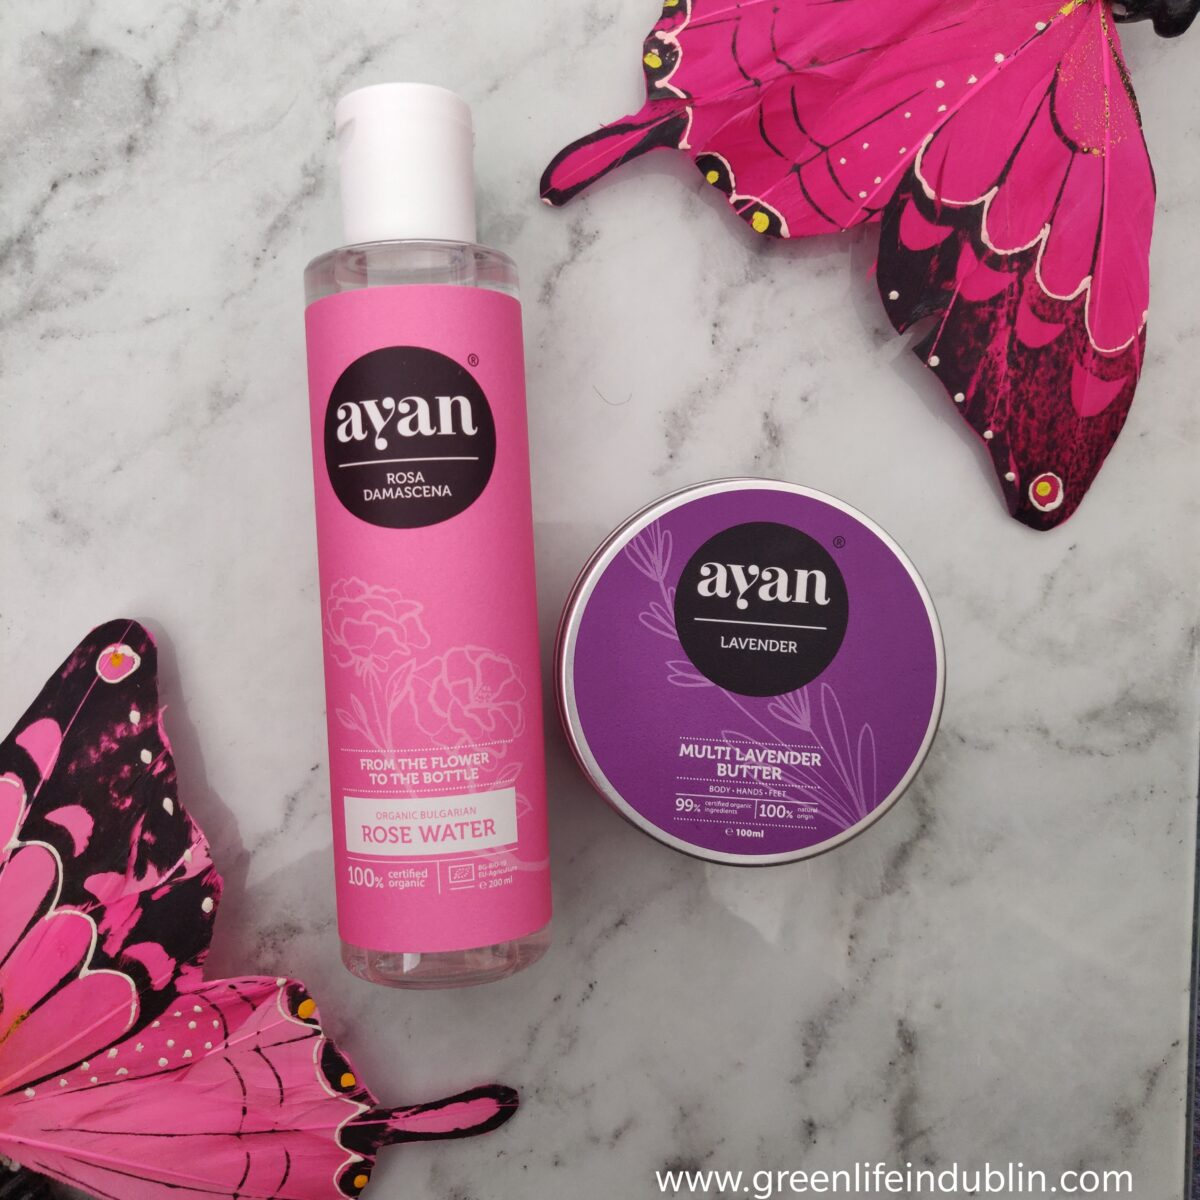 Ayan Review – Body Butter & Organic Rose Water [AD]